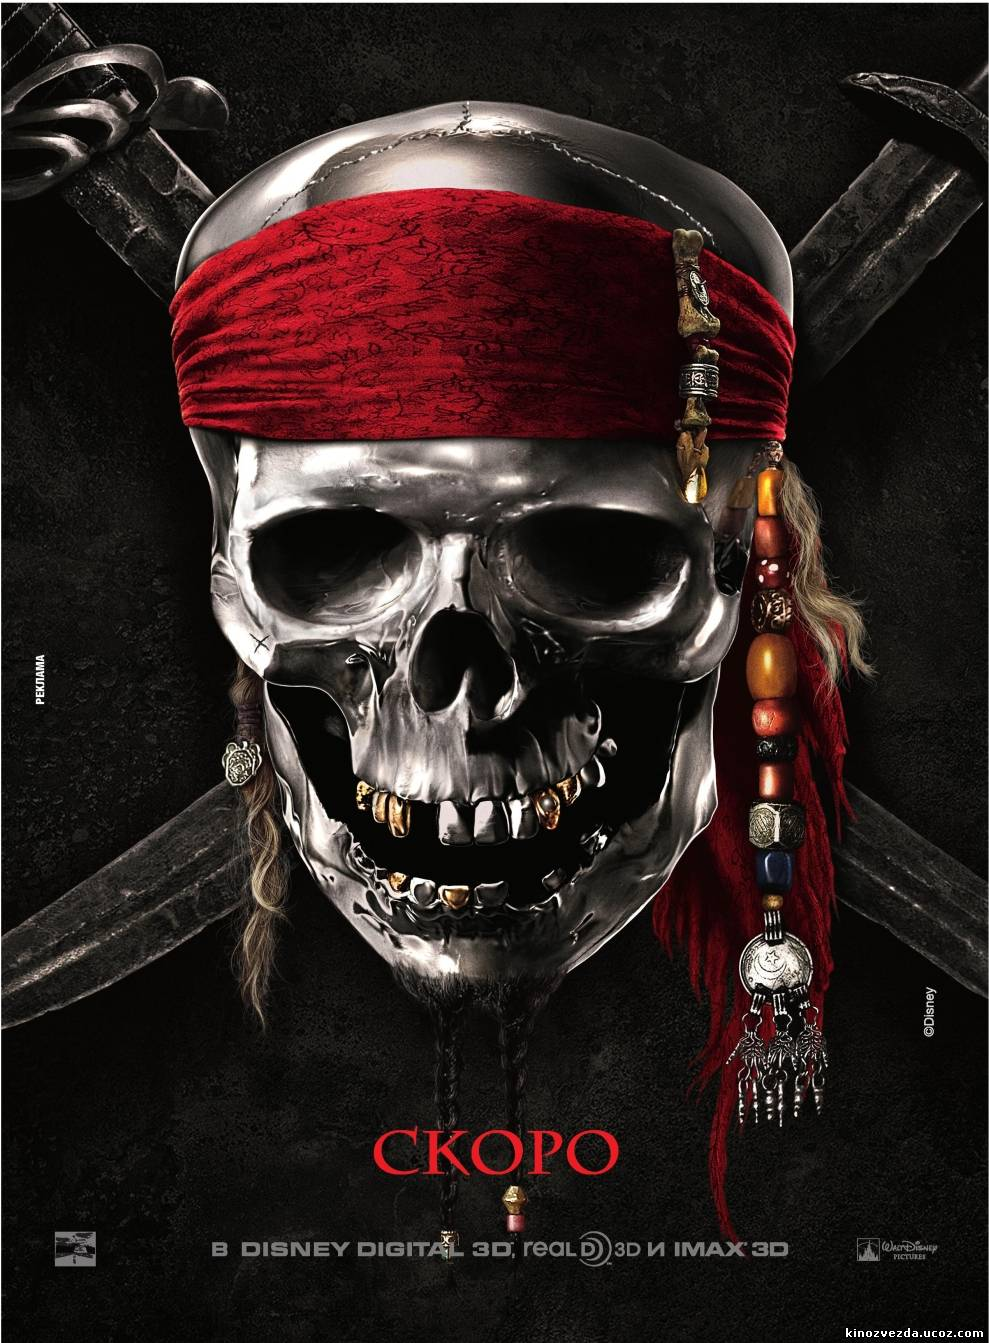 Пираты Карибского моря-4: На странных берегах / Pirates of the Caribbean 4: On Stranger Tides (2011) смотреть онлайн